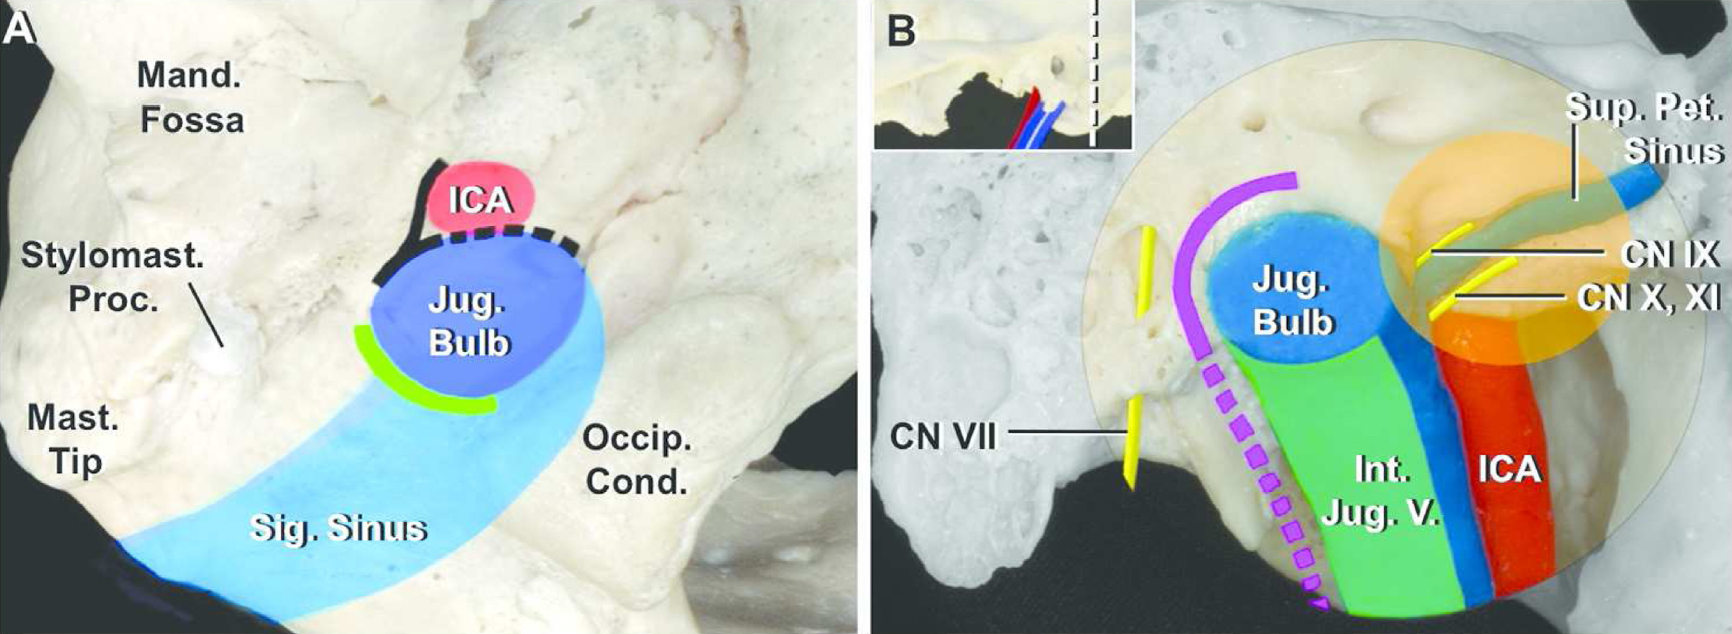 Figure 6. (A) Inferior view of jugular foramen. The site of the jugular bulb (dark blue), internal carotid artery (red), and sigmoid sinus (light blue) are shown on an image of the lower surface of the right jugular foramen. The margin of the foramen exposed by removal of the jugular process is shown (green). The area exposed by the preauricular infratemporal approach is along the anterolateral edge of the foramen (solid black line) and removal of the vaginal process of the tympanic part (black interrupted line) allows anterior transposition of the carotid artery and drilling of the anterior margin of the foramen. (B) Anterior view of the posterior face of a coronal section through the skull posterior to the right external acoustic meatus at the level of the white line shown in the insert in the upper corner of panel B. The infralabyrinthine mastoidectomy opens a wide area from the top of the dome to the lateral side of the jugular bulb (solid purple line in panel B). The cervical exposure provides access to the internal jugular vein below the foramen (interrupted purple line in panel B). The lateral suboccipital approach (retrosigmoid exposure) can access the jugular foramen intracranially (orange circle area in panel B). A., artery; Ac., acoustic; CN, cranial nerve; Car., carotid; Cond., condyle; Int., internal; JF, jugular foramen; Jug., jugular; Mand., mandibular; Mast., mastoid; Meat., meatus; N., nerve; Occip., occipital; Pet., petrosal; Proc., process; Sig., sigmoid; Stylomast., stylomastoid; V., vein. (Images courtesy of AL Rhoton, Jr.)